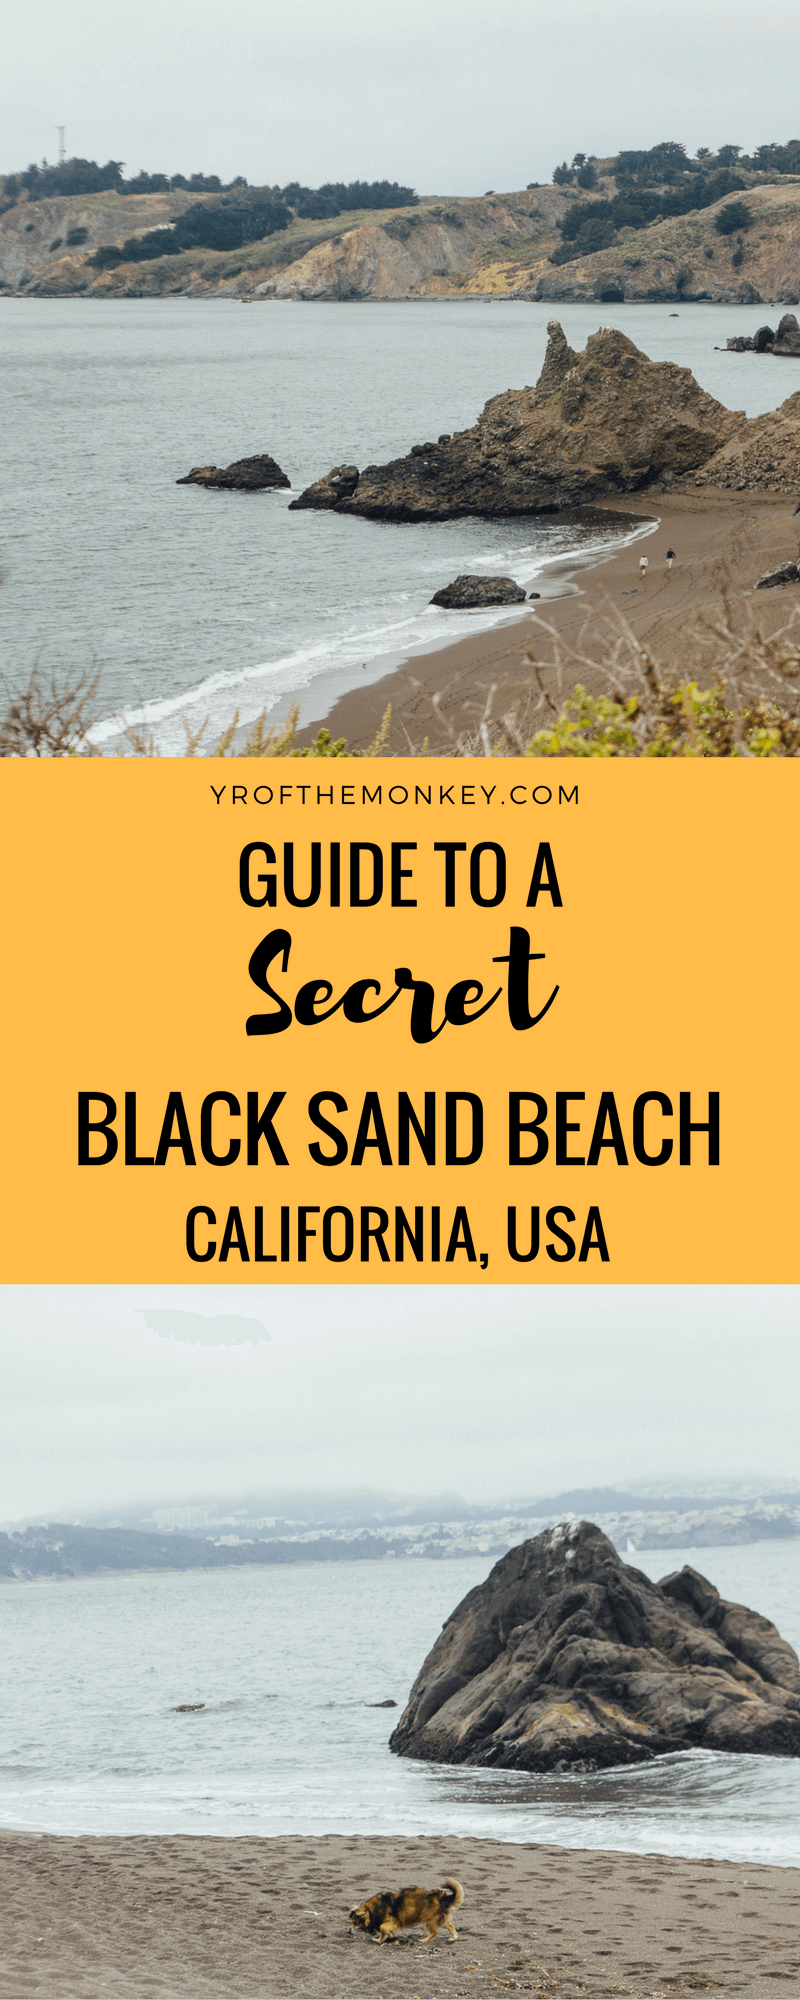 Want to escape to a secret, black sands beach in Northern California,USA for a romantic picnic? Even better, want to dip your toes in black sand? Read this post to discover a Black sand beach in Sausalito which is a local's secret and super hidden from touristy eyes. A short drive from San Francisco, this beach is one of the best kept secrets of the Bay Area! Pin this to your California board for a great day trip to Sausalito! #blacksandbeach #beach #california #bayarea #daytrip #californiatravelguide